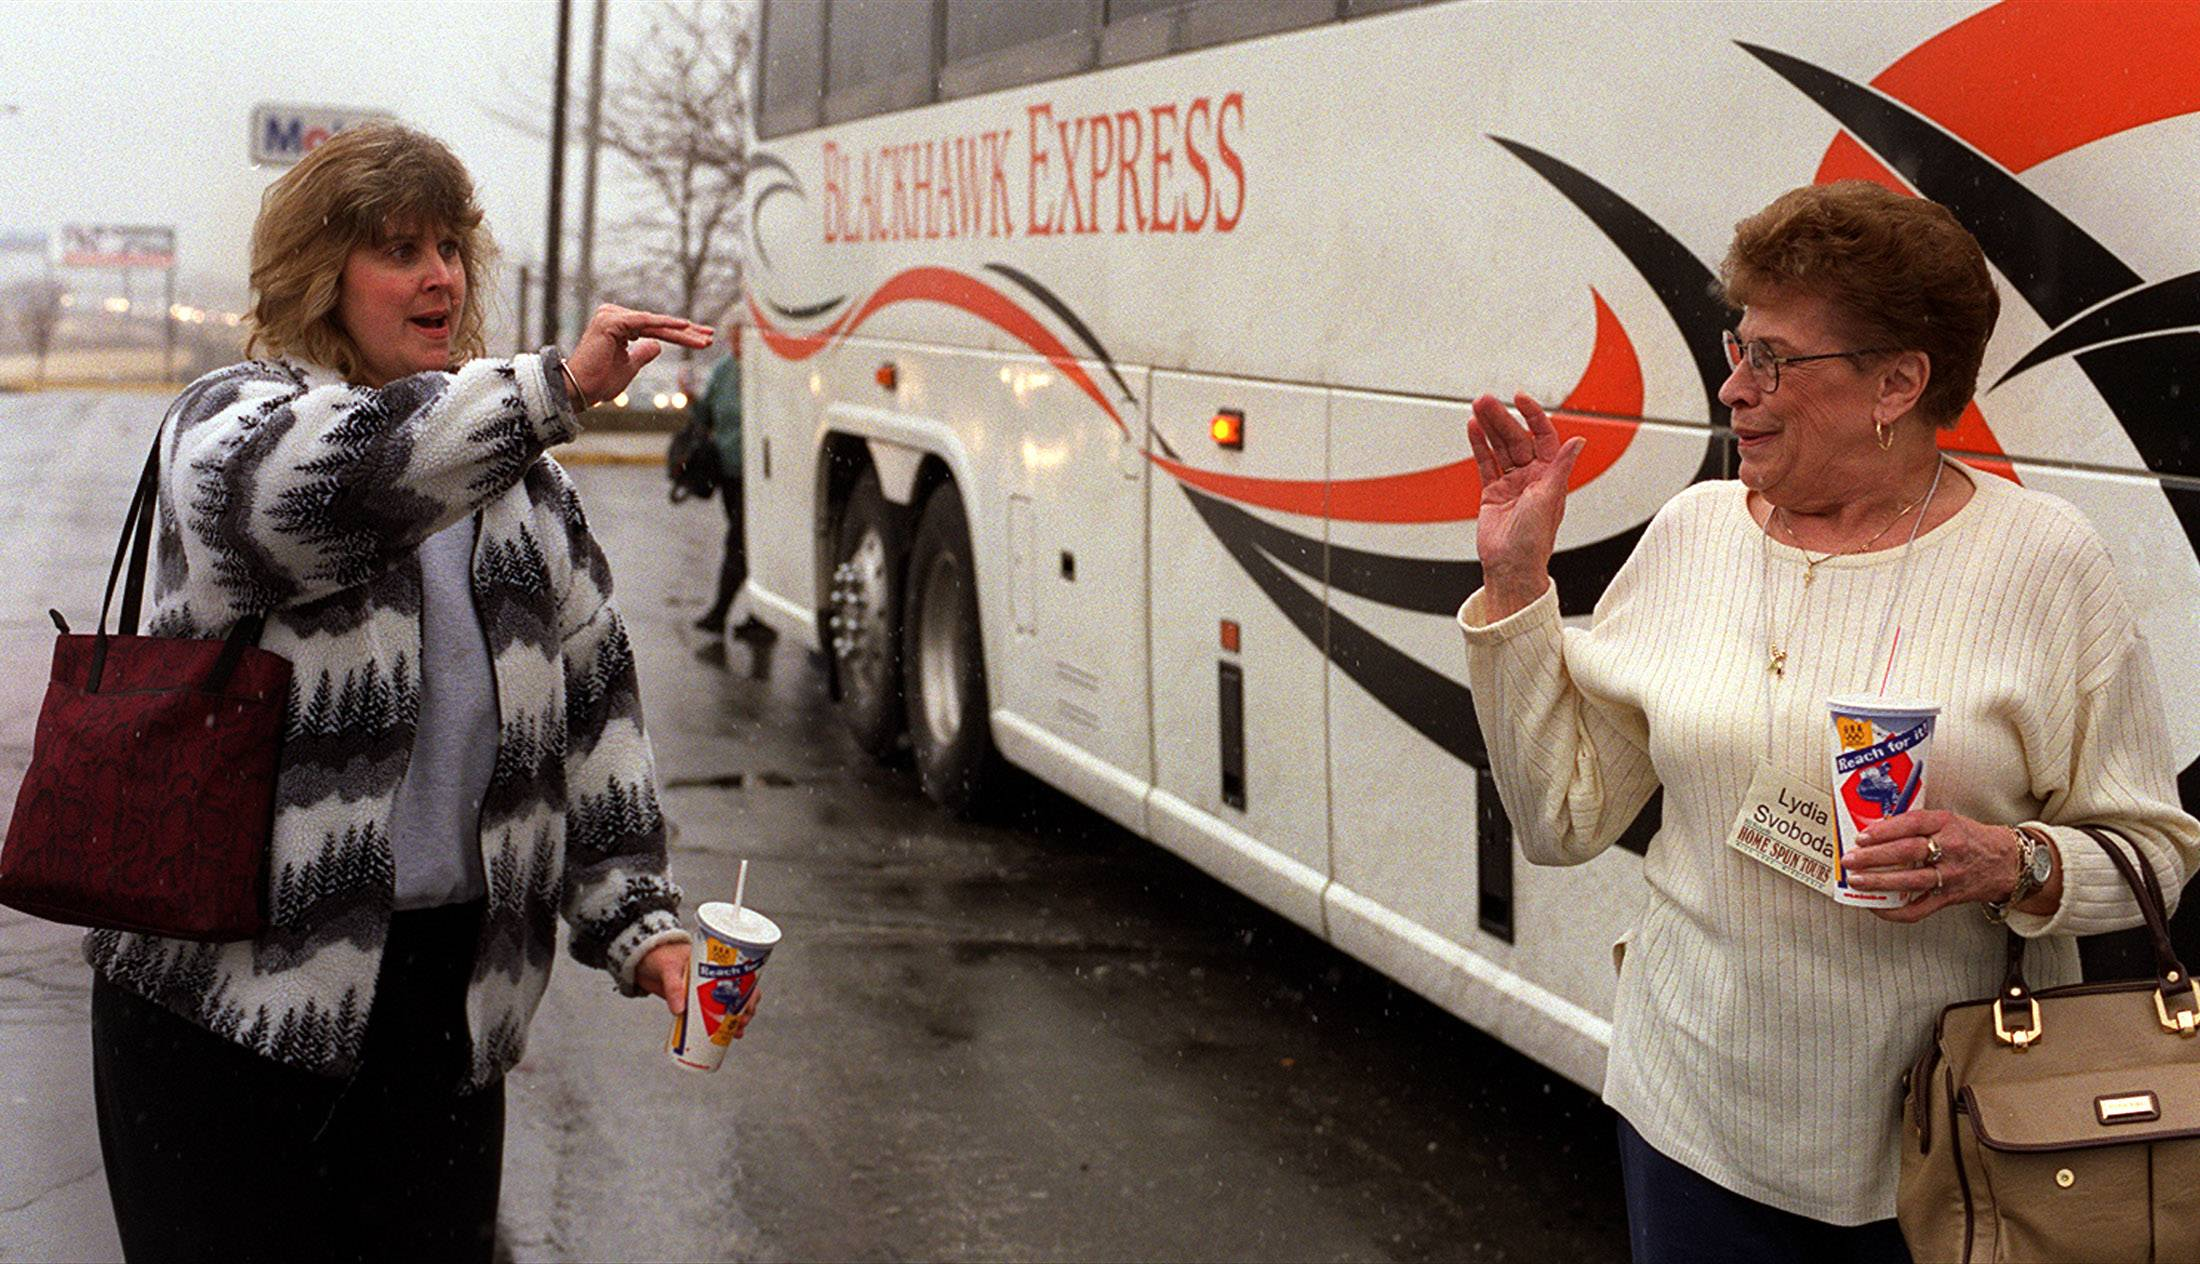 Ann Vujica, left, of Berwyn waves to her mother Lydia Svoboda of Rice Lake, Wi. Ann's mother was on a tour bus which briefly stopped at the oasis before journeying toward the East Coast.